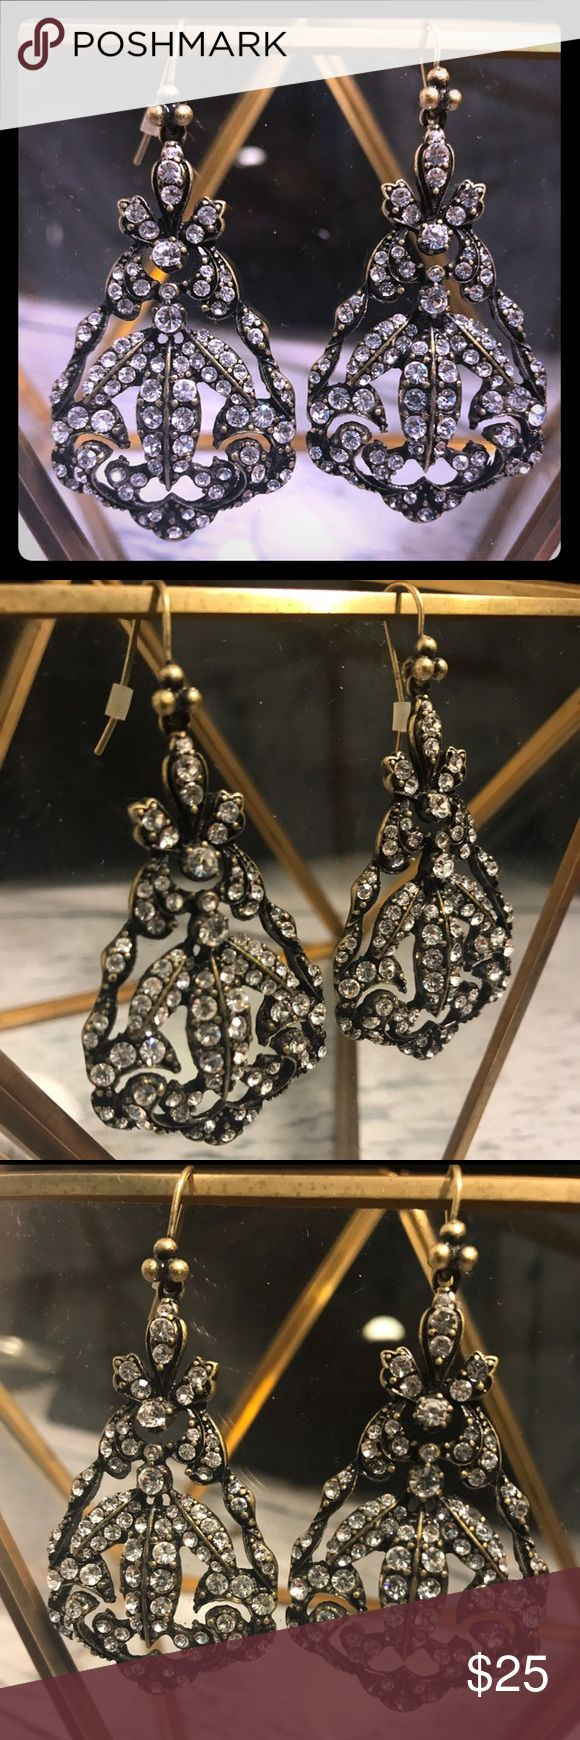 🆕 NEVER WORN! Vintage inspired chandler earrings! 🆕 NEVER WORN! Vintage inspired chandler earrings! Lydell NYC from NEIMAN MARCUS lydell nyc Jewelry Earrings